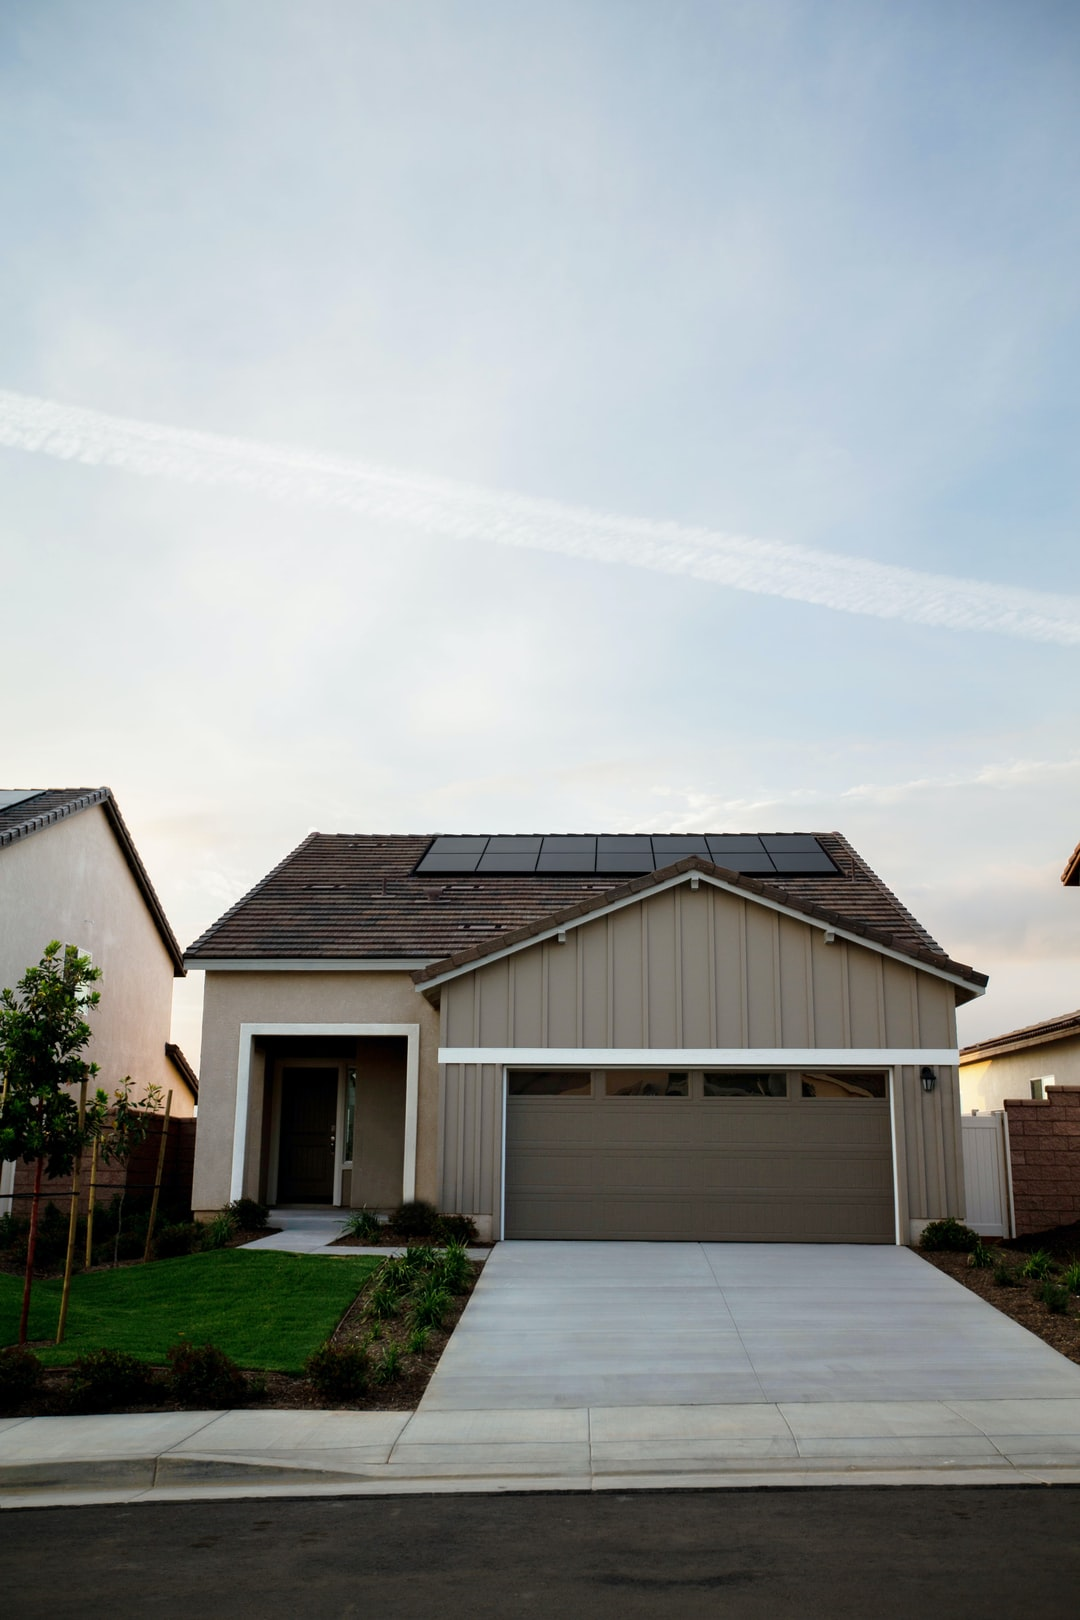 Vivint Solar - Solar Panels on small home with driveway from street.